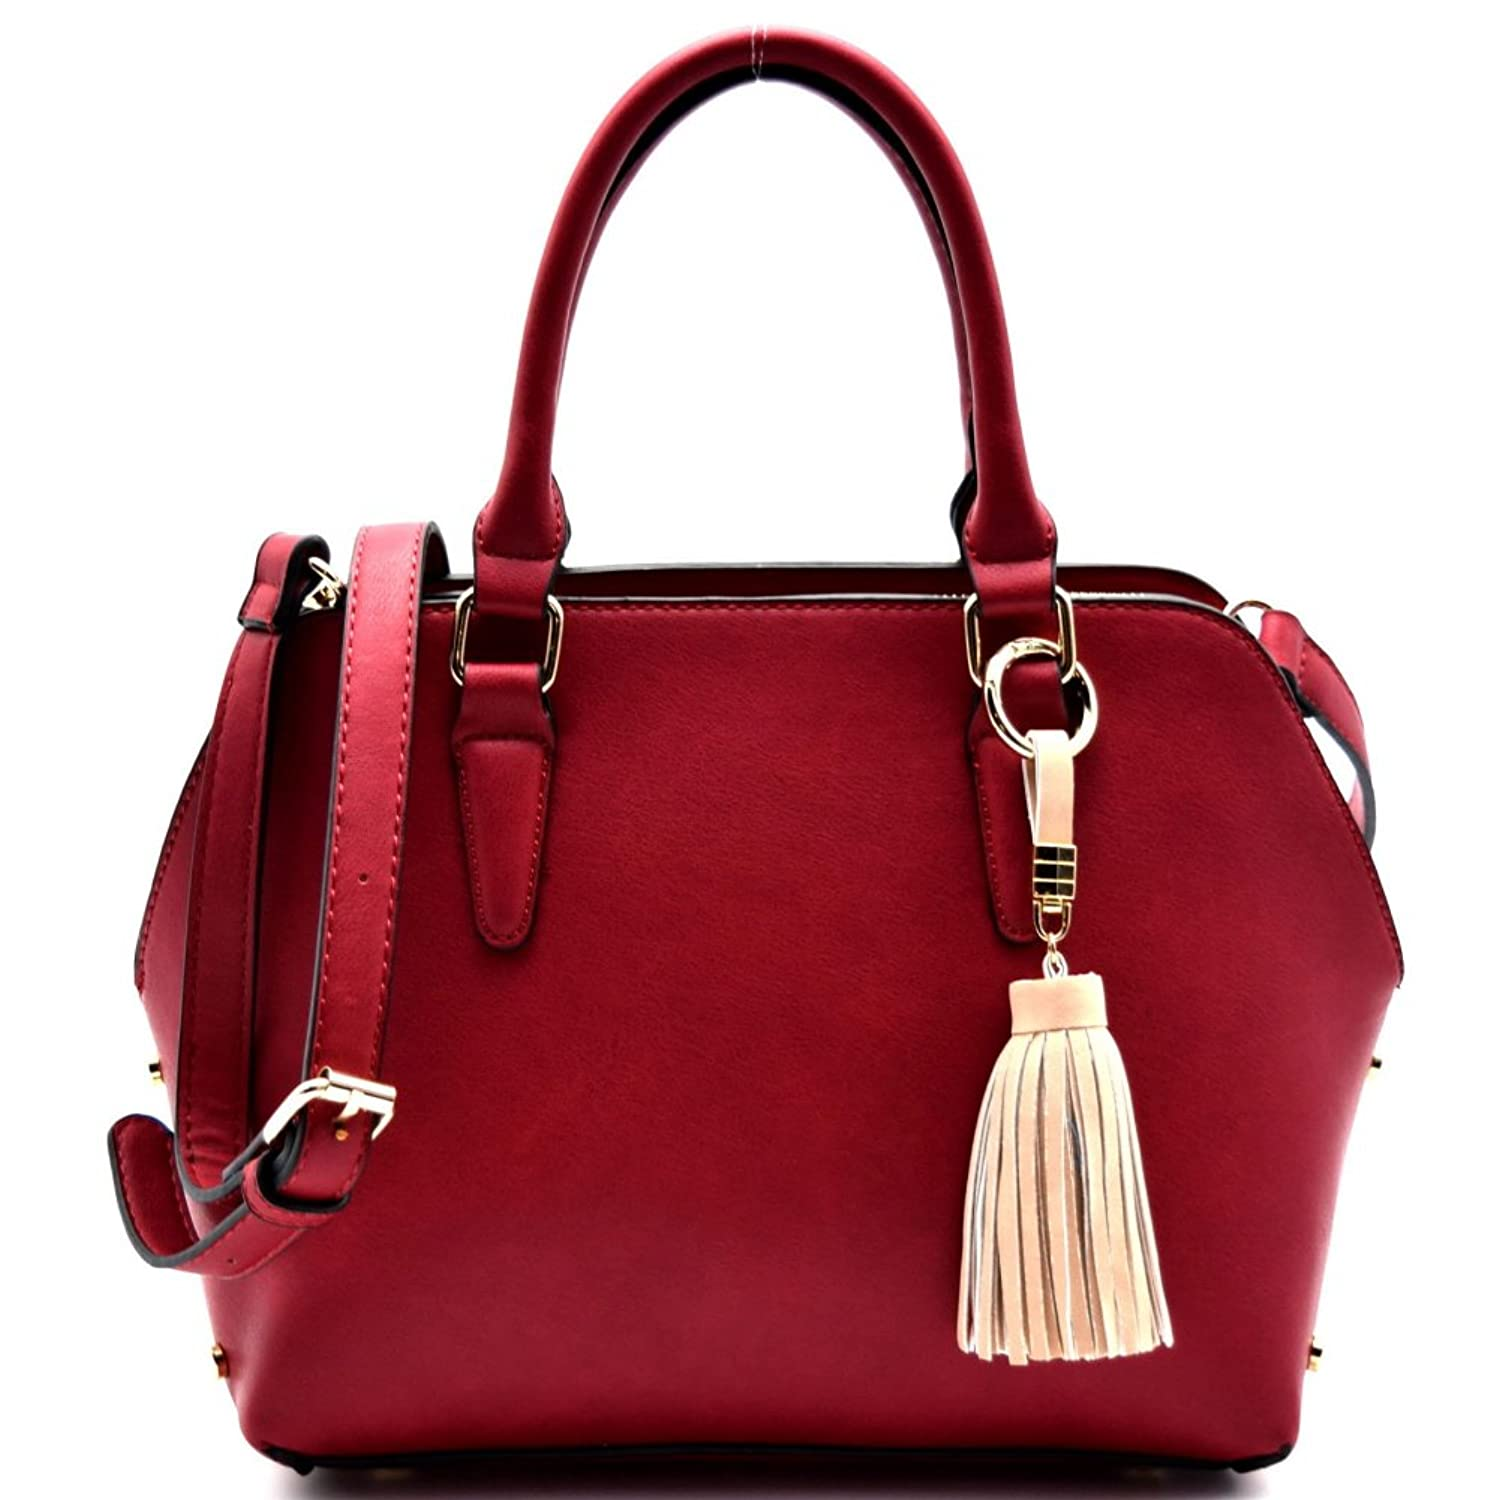 Tassel Accent 3 Compartment Classy Satchel